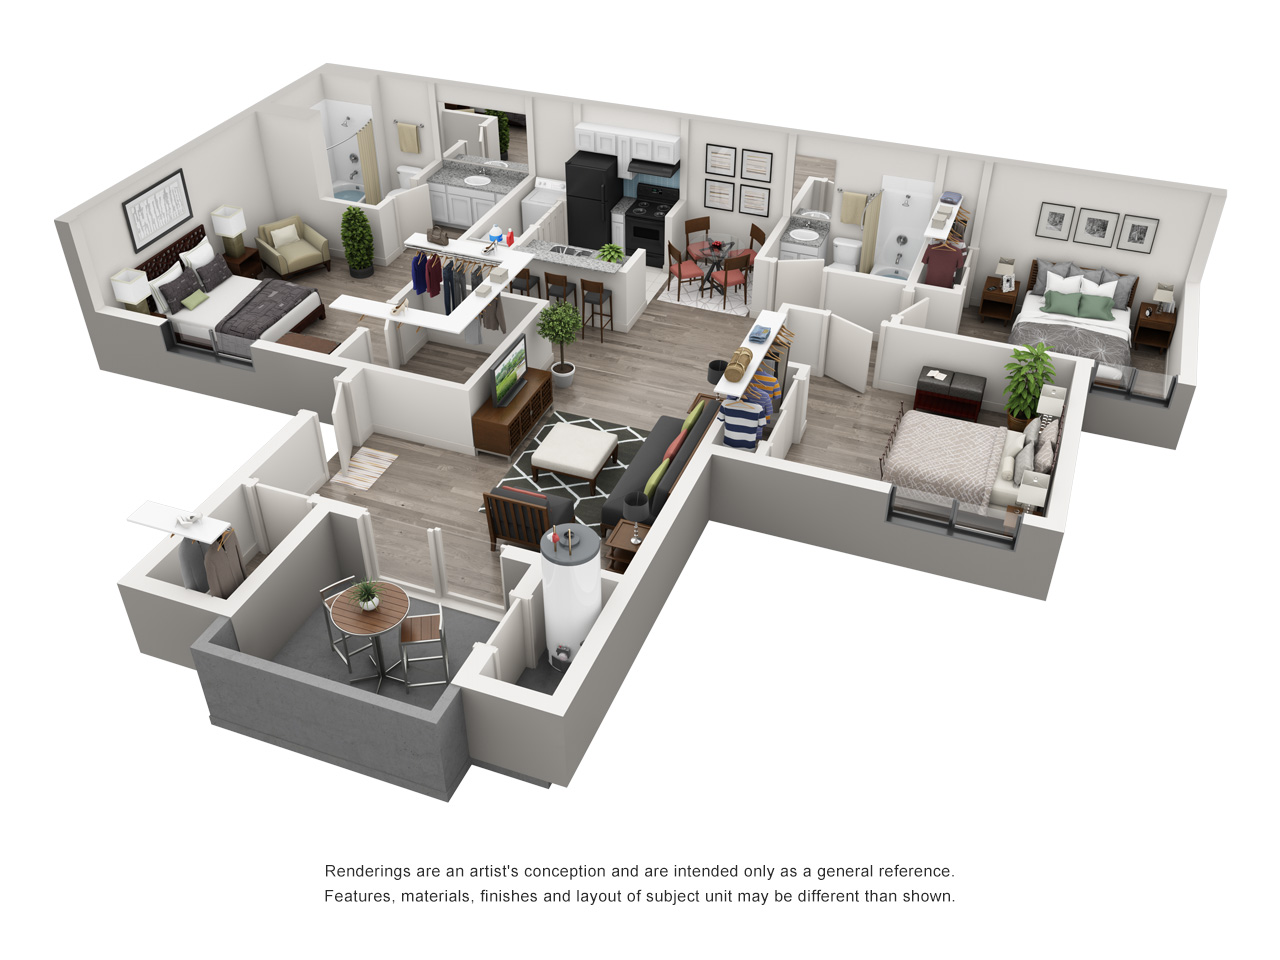 3 Bedroom Apartment Floorplan 1 2 3 Bedroom Apartments In Tucson Az Palm Canyon Apartments